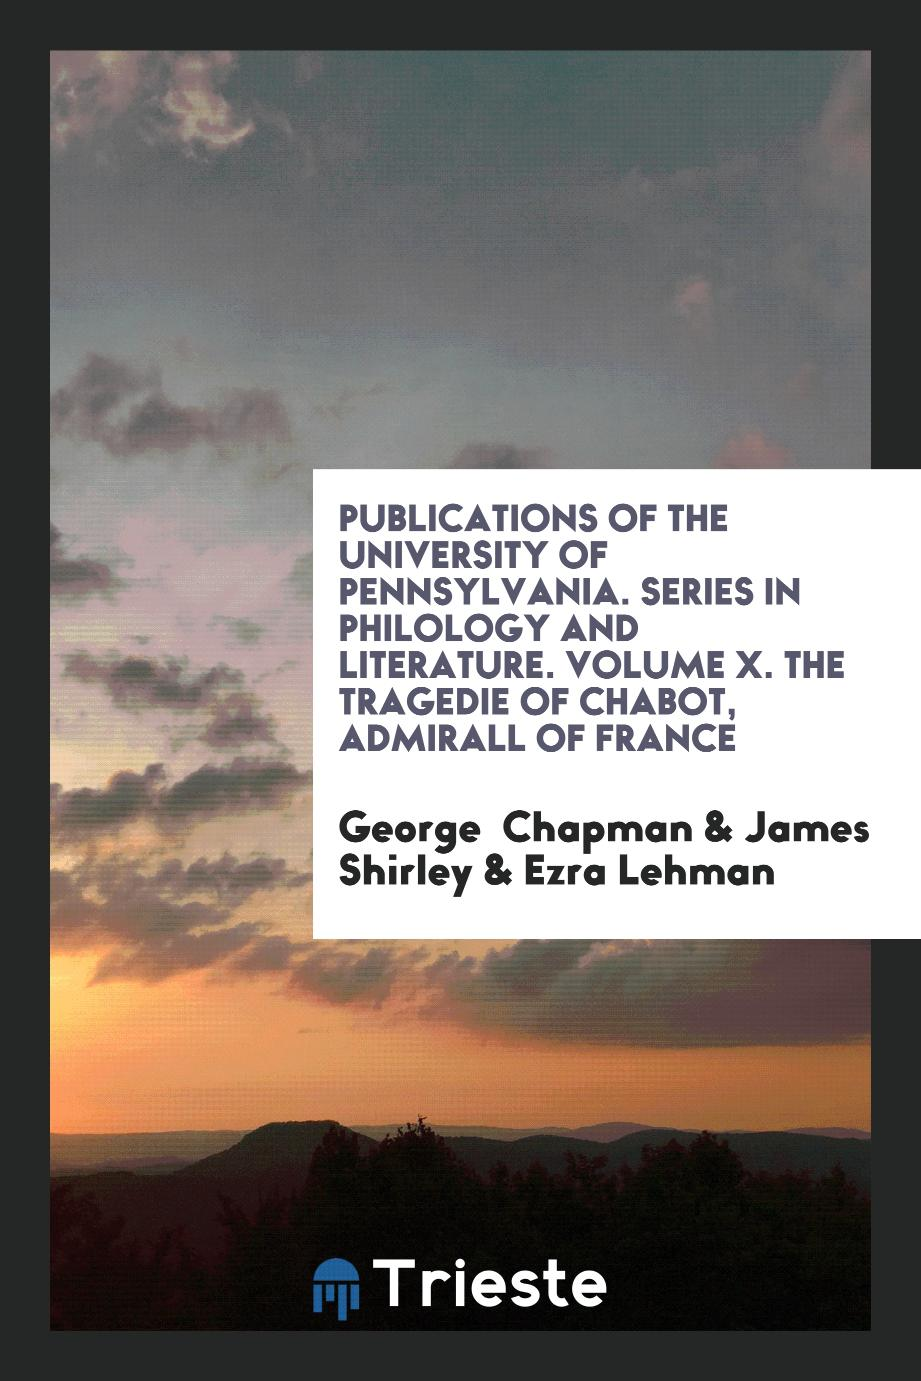 Publications of the University of Pennsylvania. Series in Philology and Literature. Volume X. The Tragedie of Chabot, Admirall of France